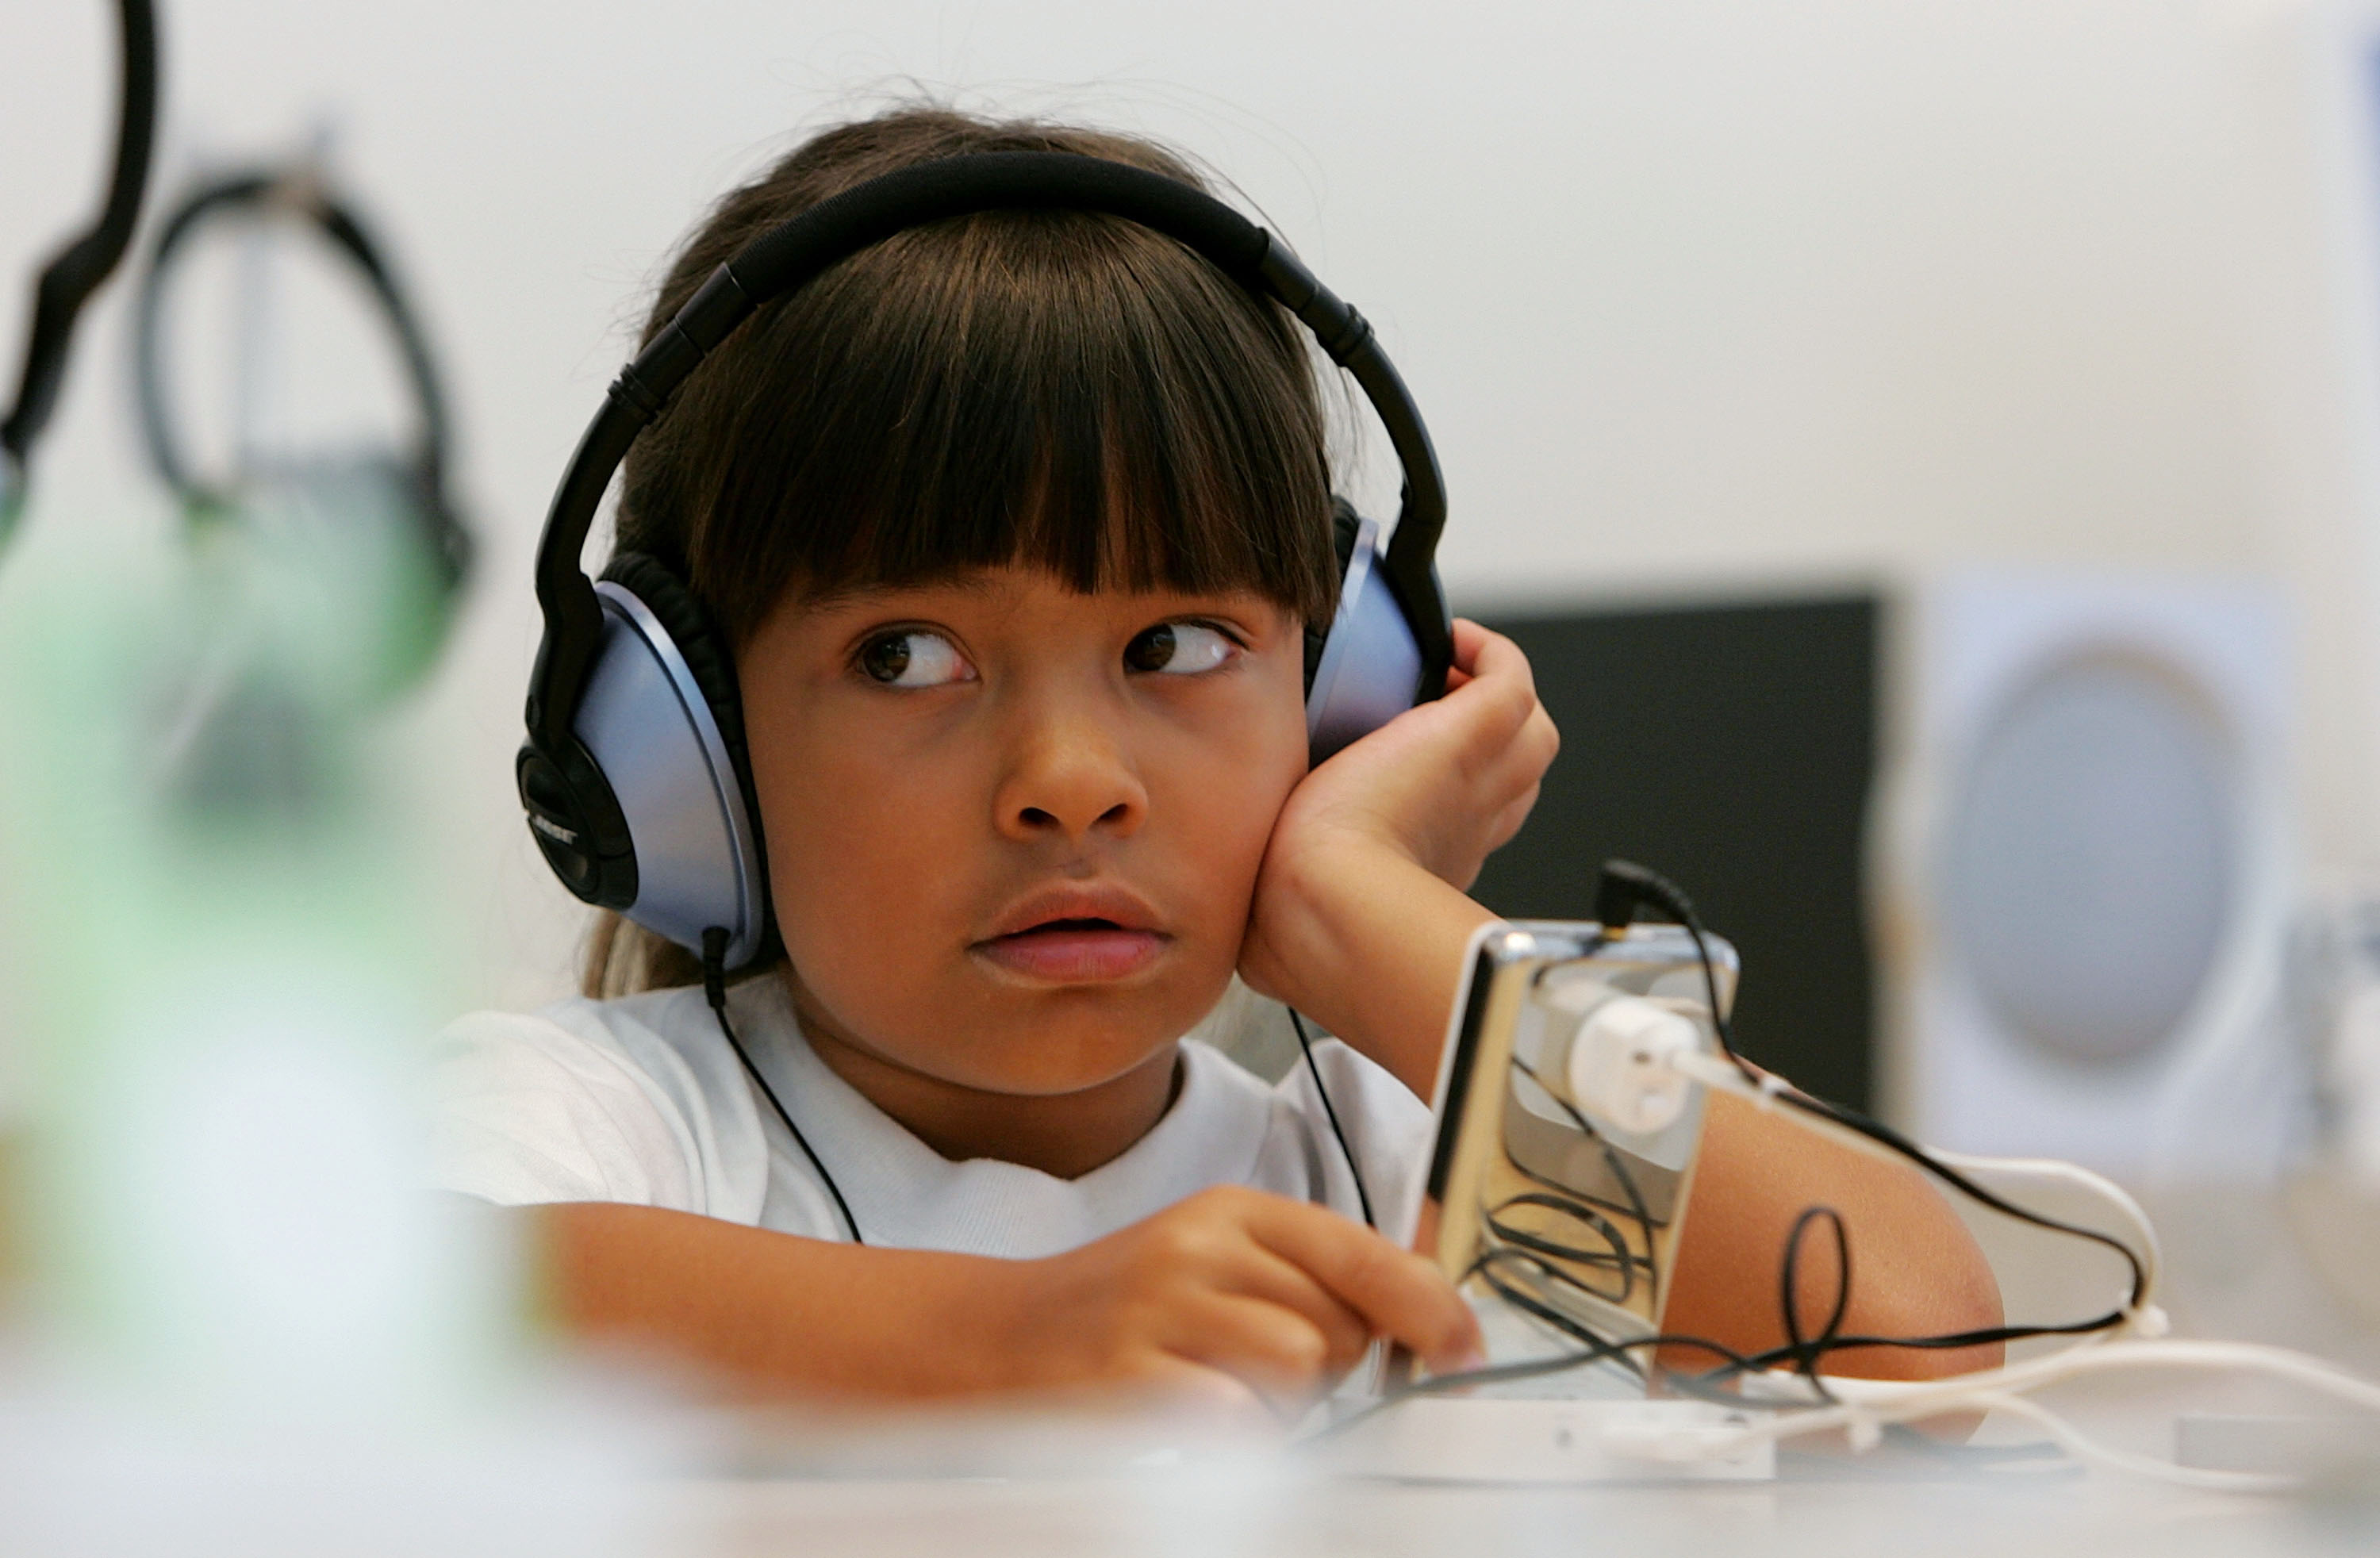 Six-year-old Emma Cordell listens to a new iPod on display at the Apple Store July 14, 2005 in San Francisco, California.